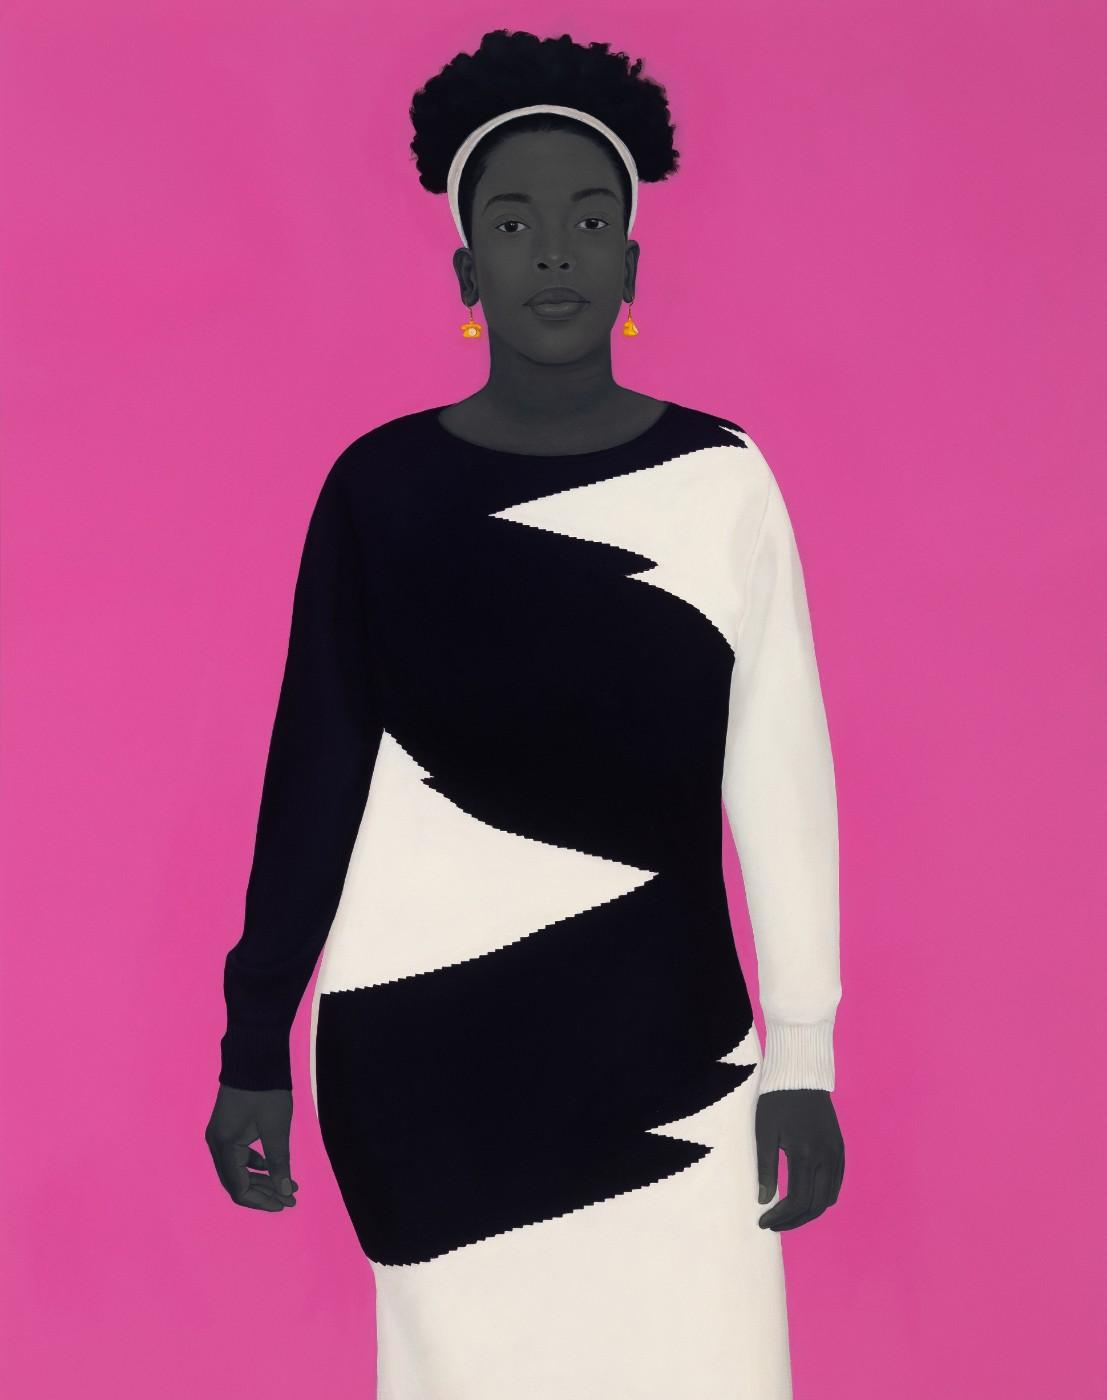 Amy Sherald, Sometimes the king is a woman, 2019